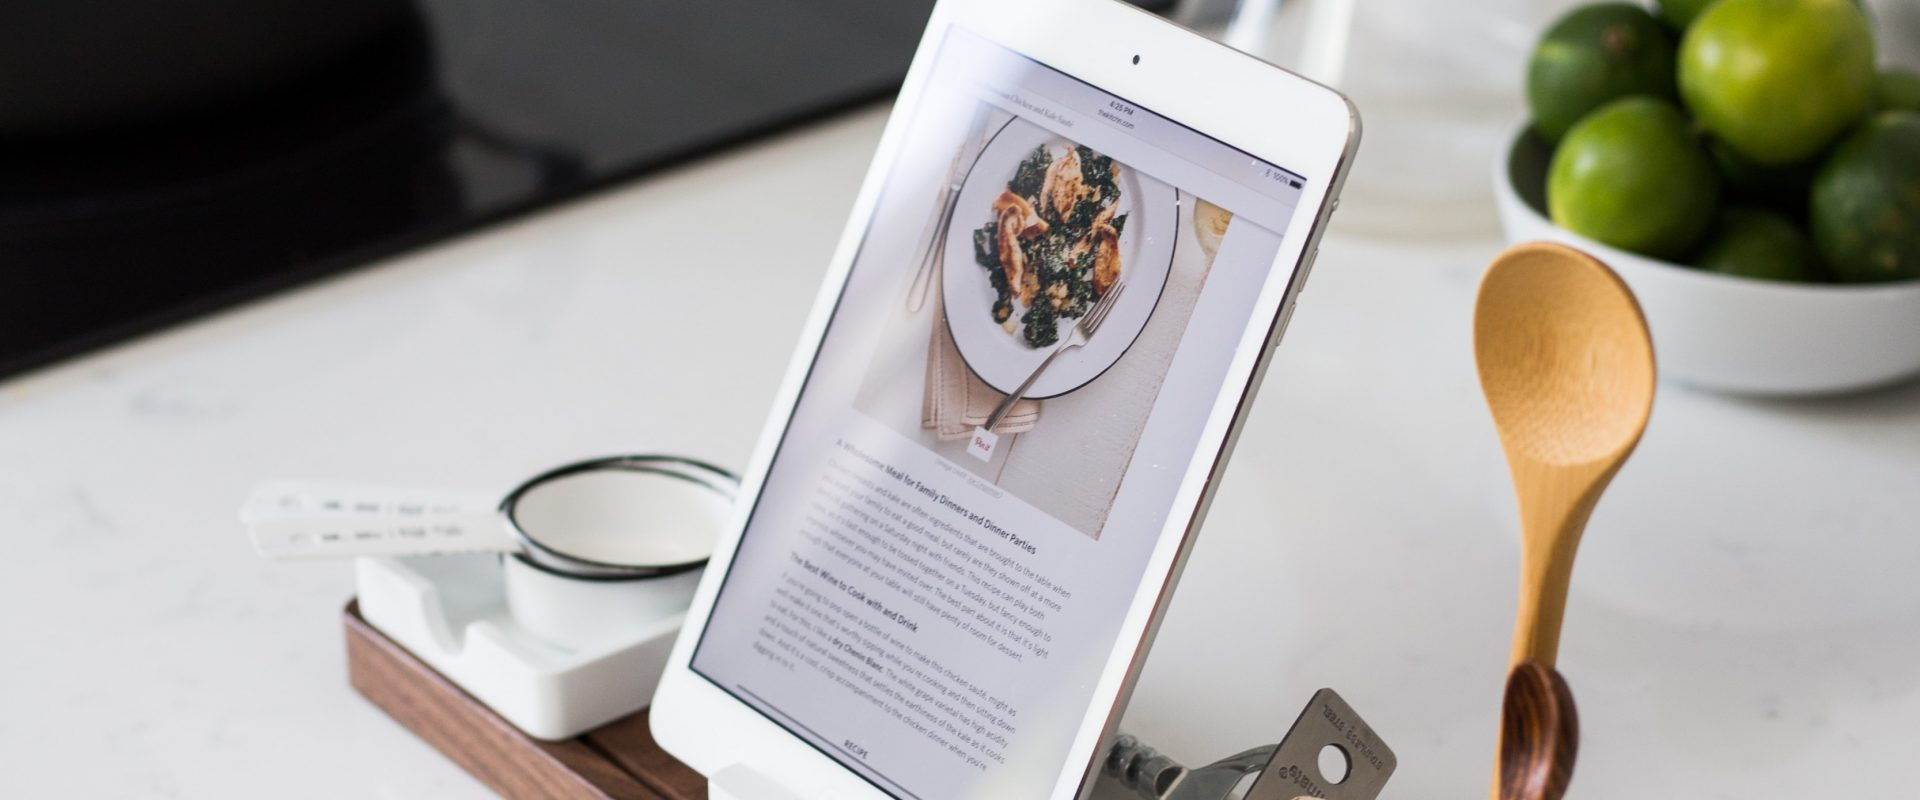 Recipe displayed on a tablet